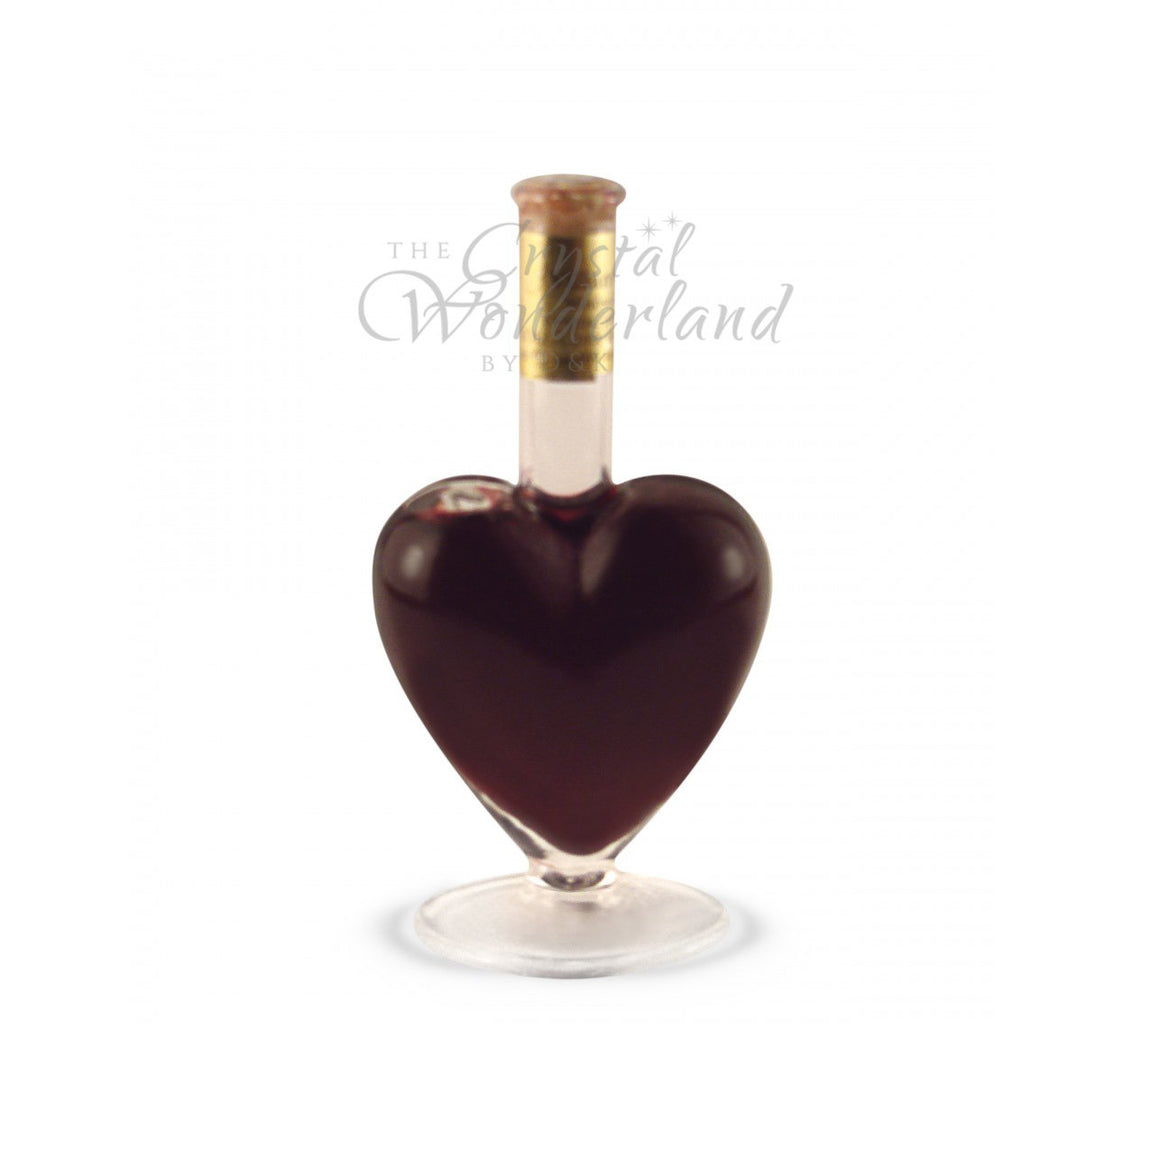 Glass Handcrafted Heart 3.4oz - The Crystal Wonderland